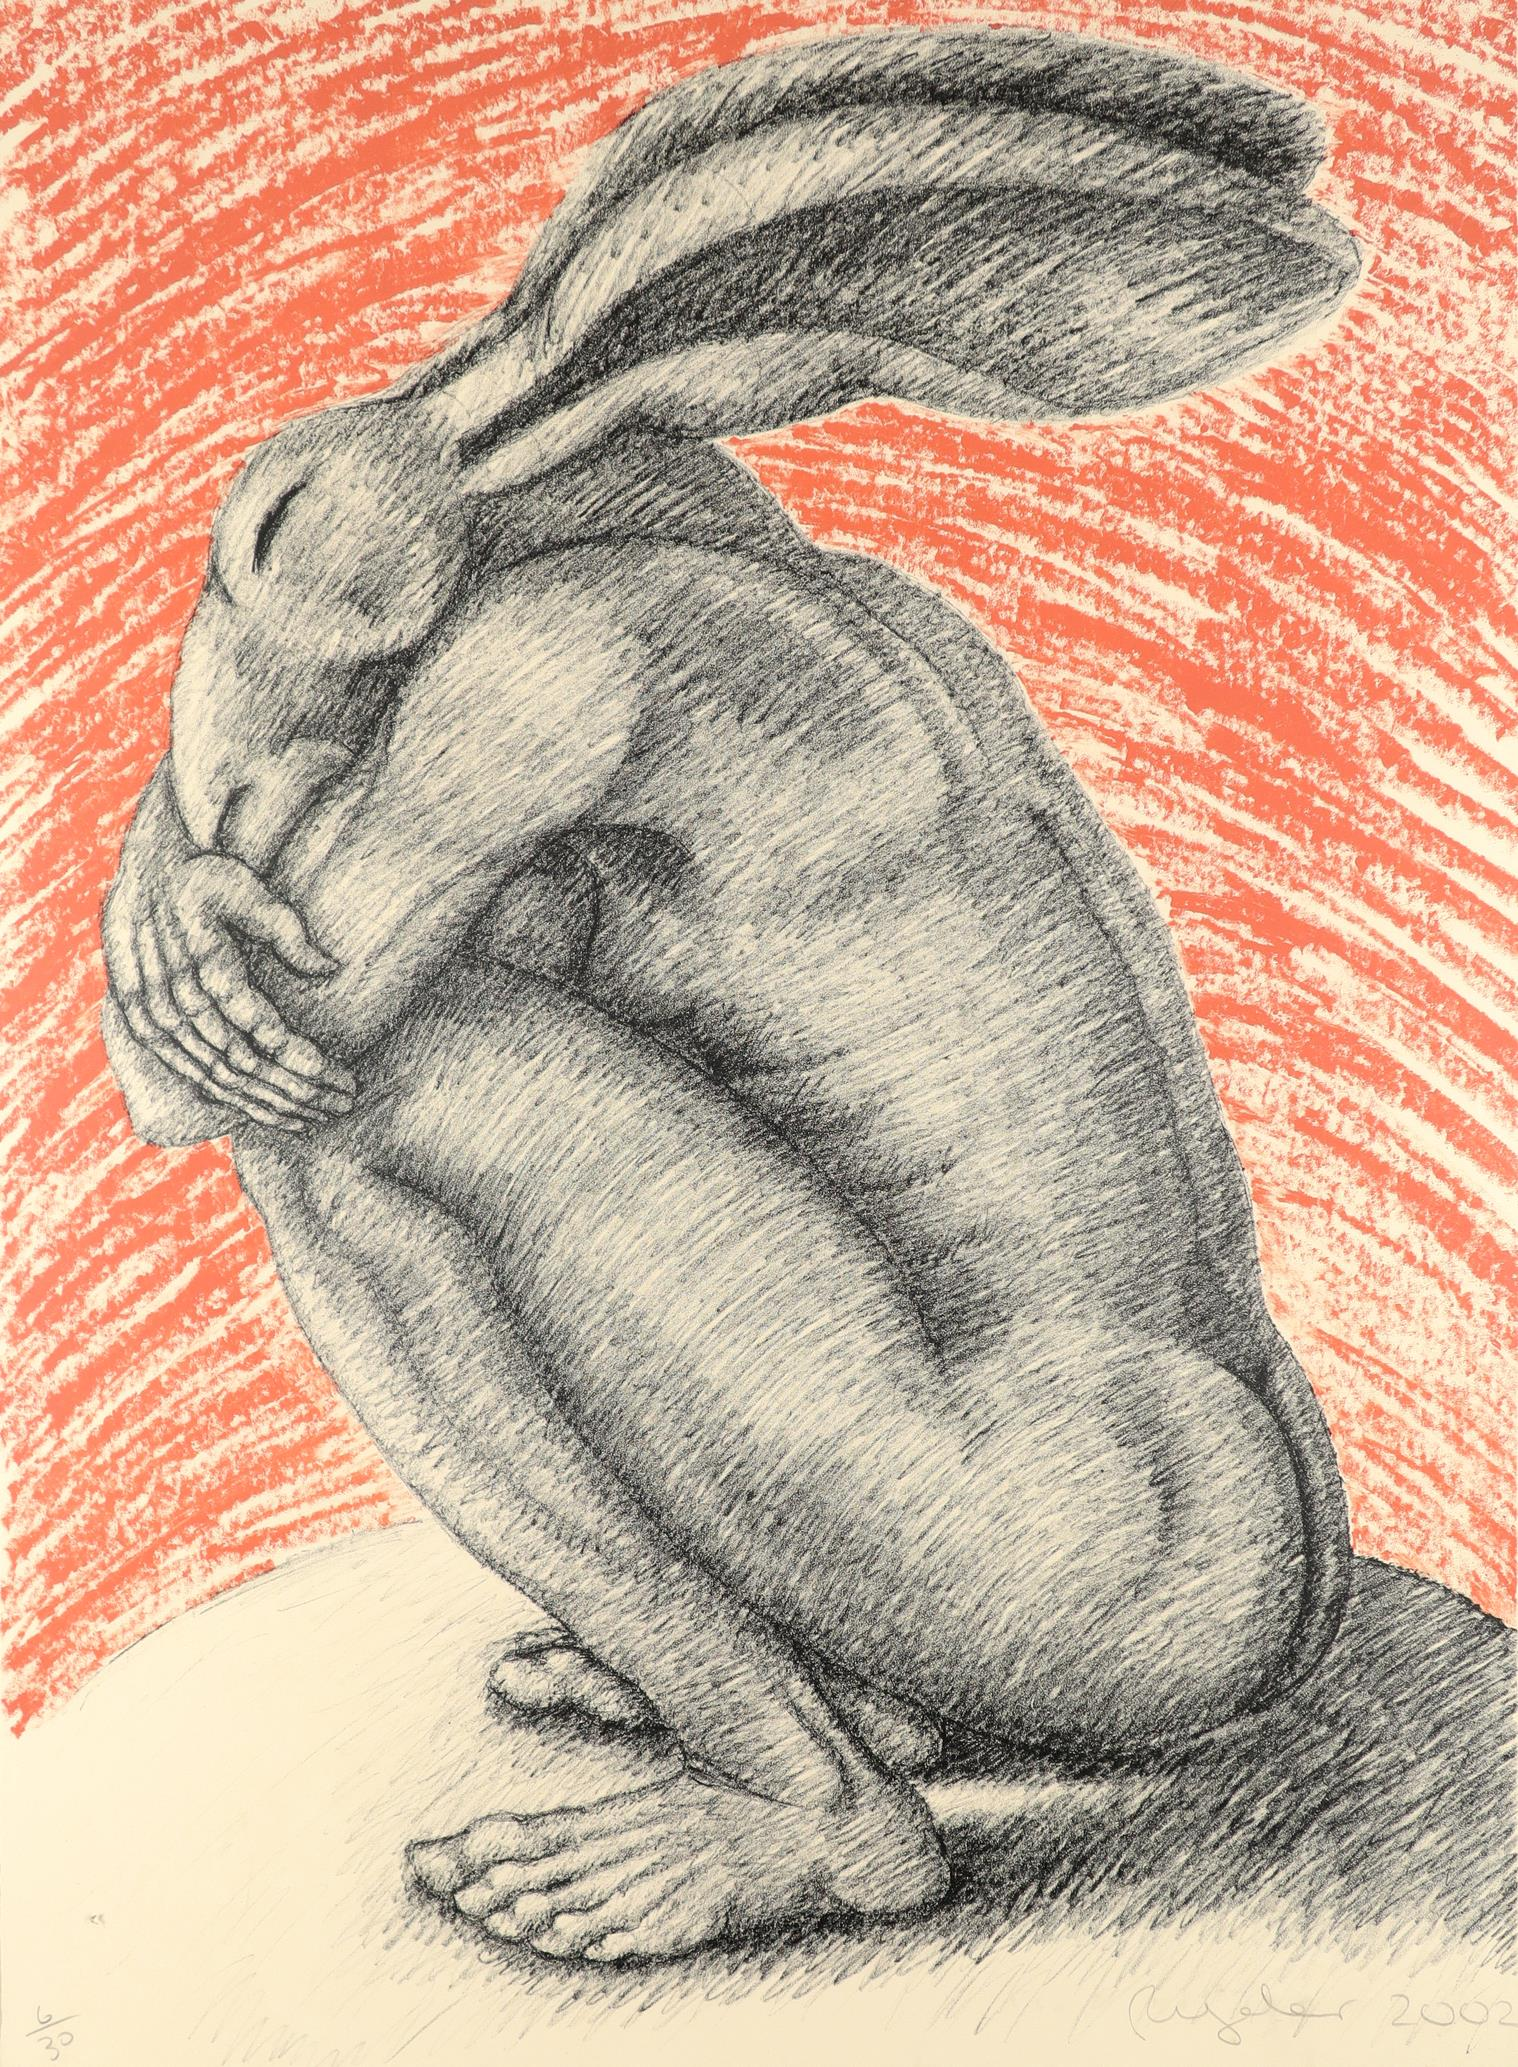 ‡Sophie Ryder (b.1963) Crouching lady-hare Signed, dated and numbered 6/30 Ryder 2002 (in pencil)